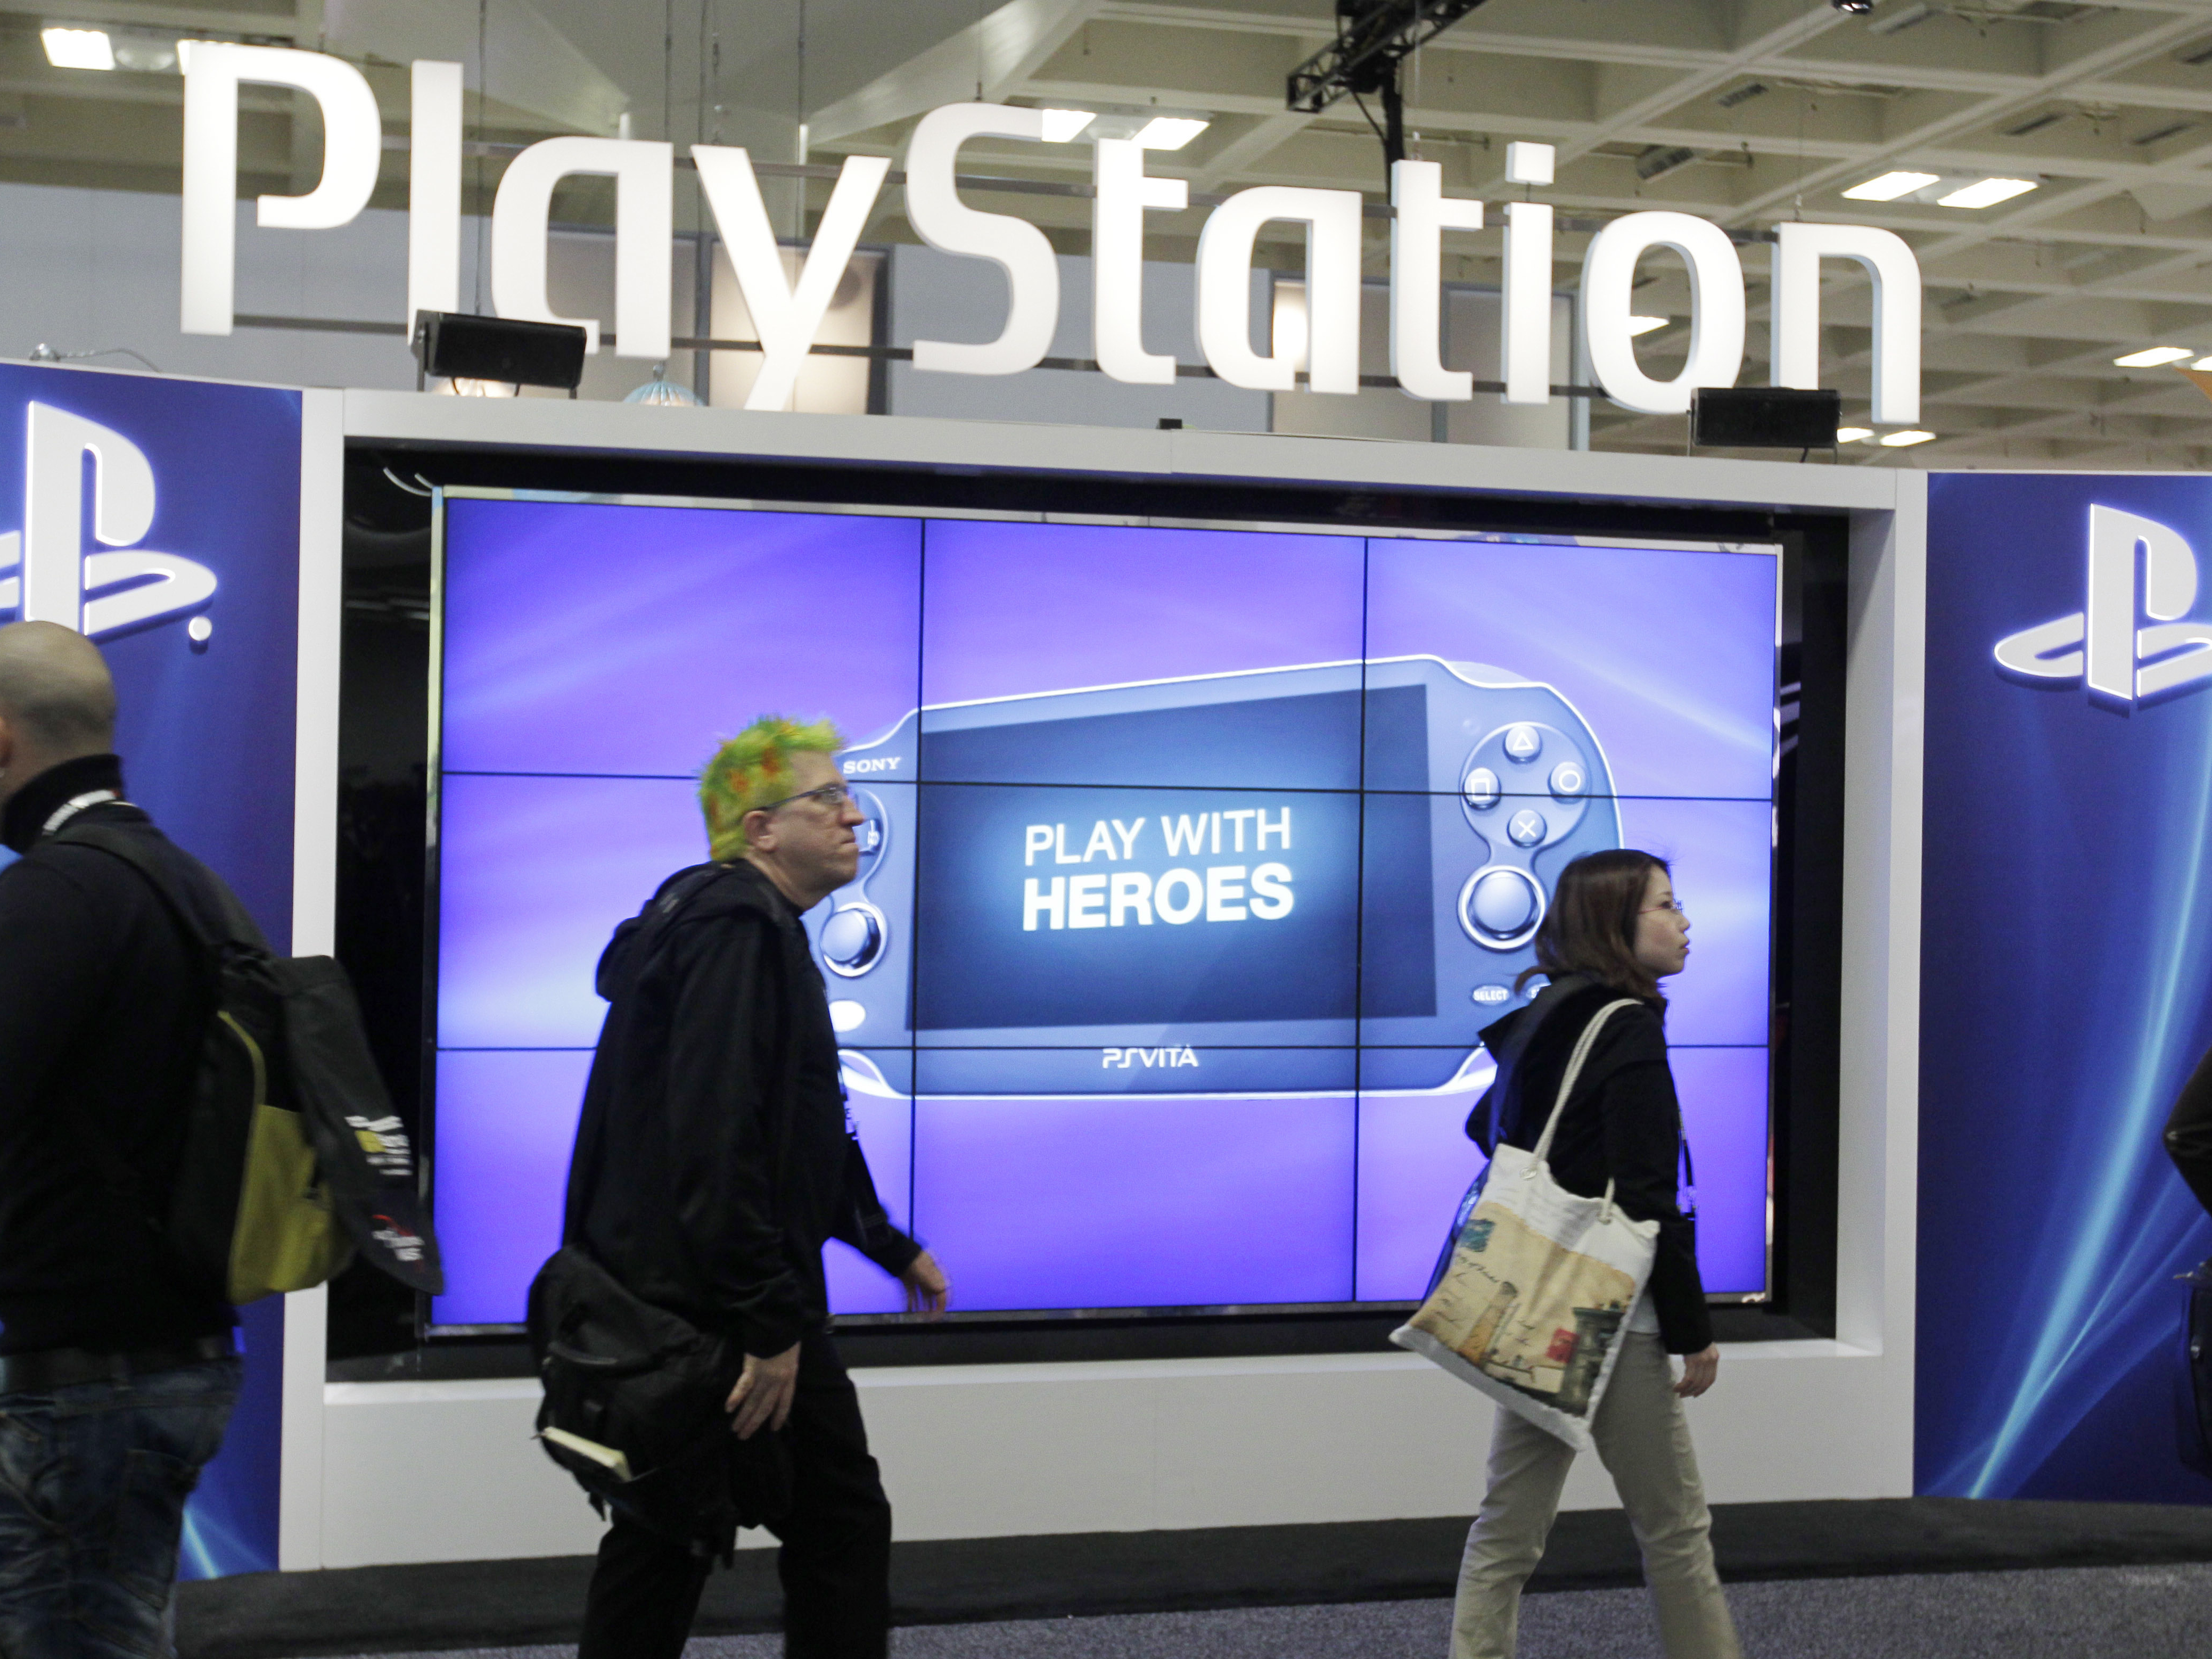 Possible Hack Of Sony, Microsoft Game Console Sites